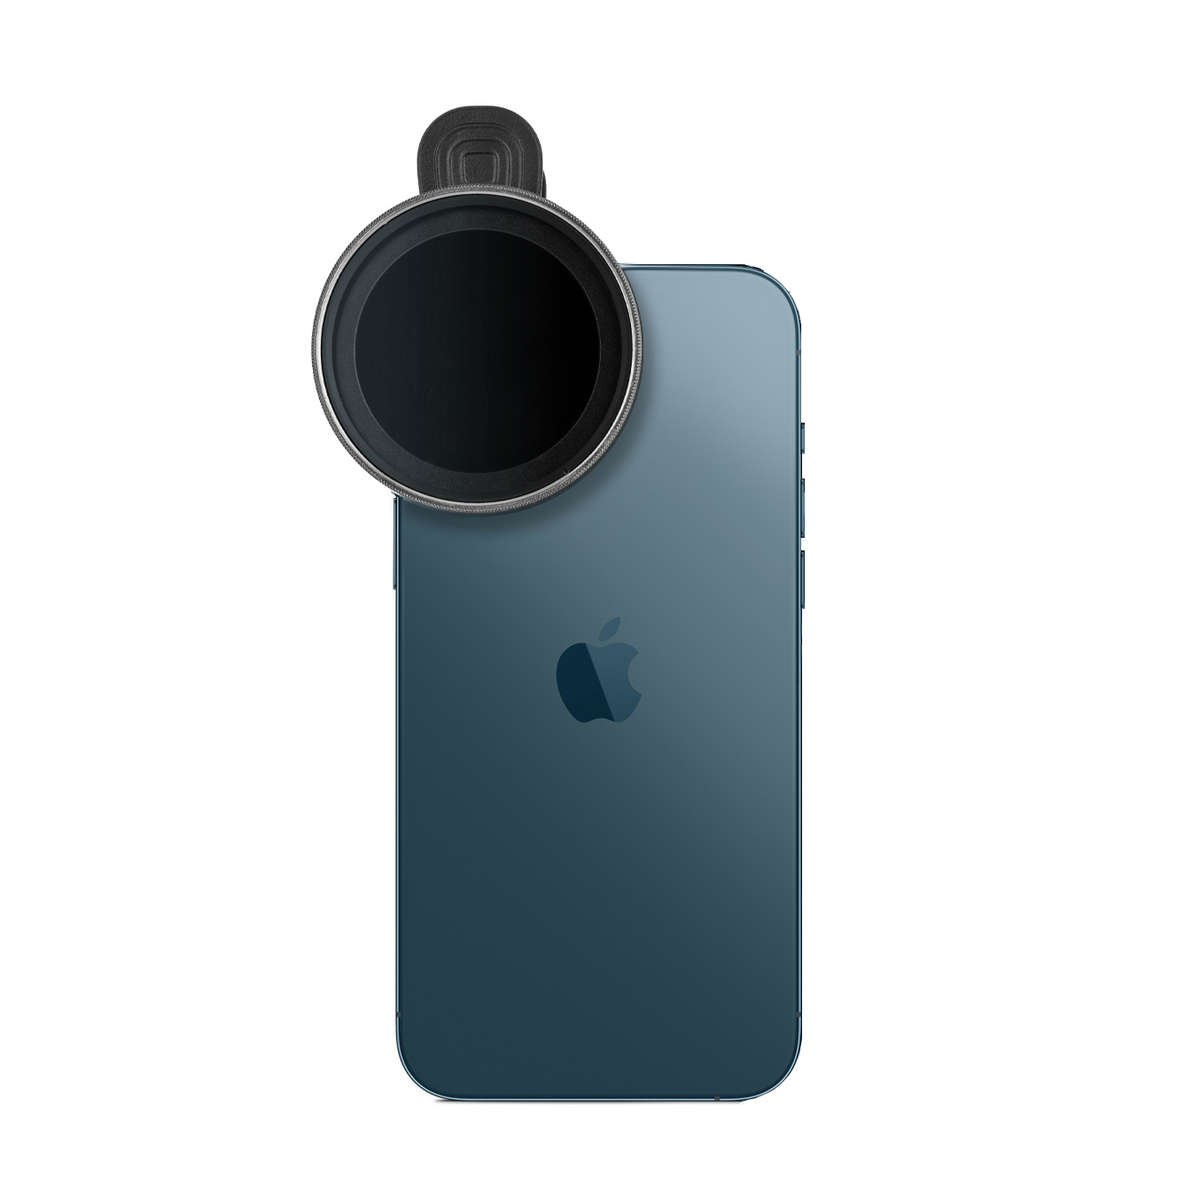 iPhone 12 Lens attachments